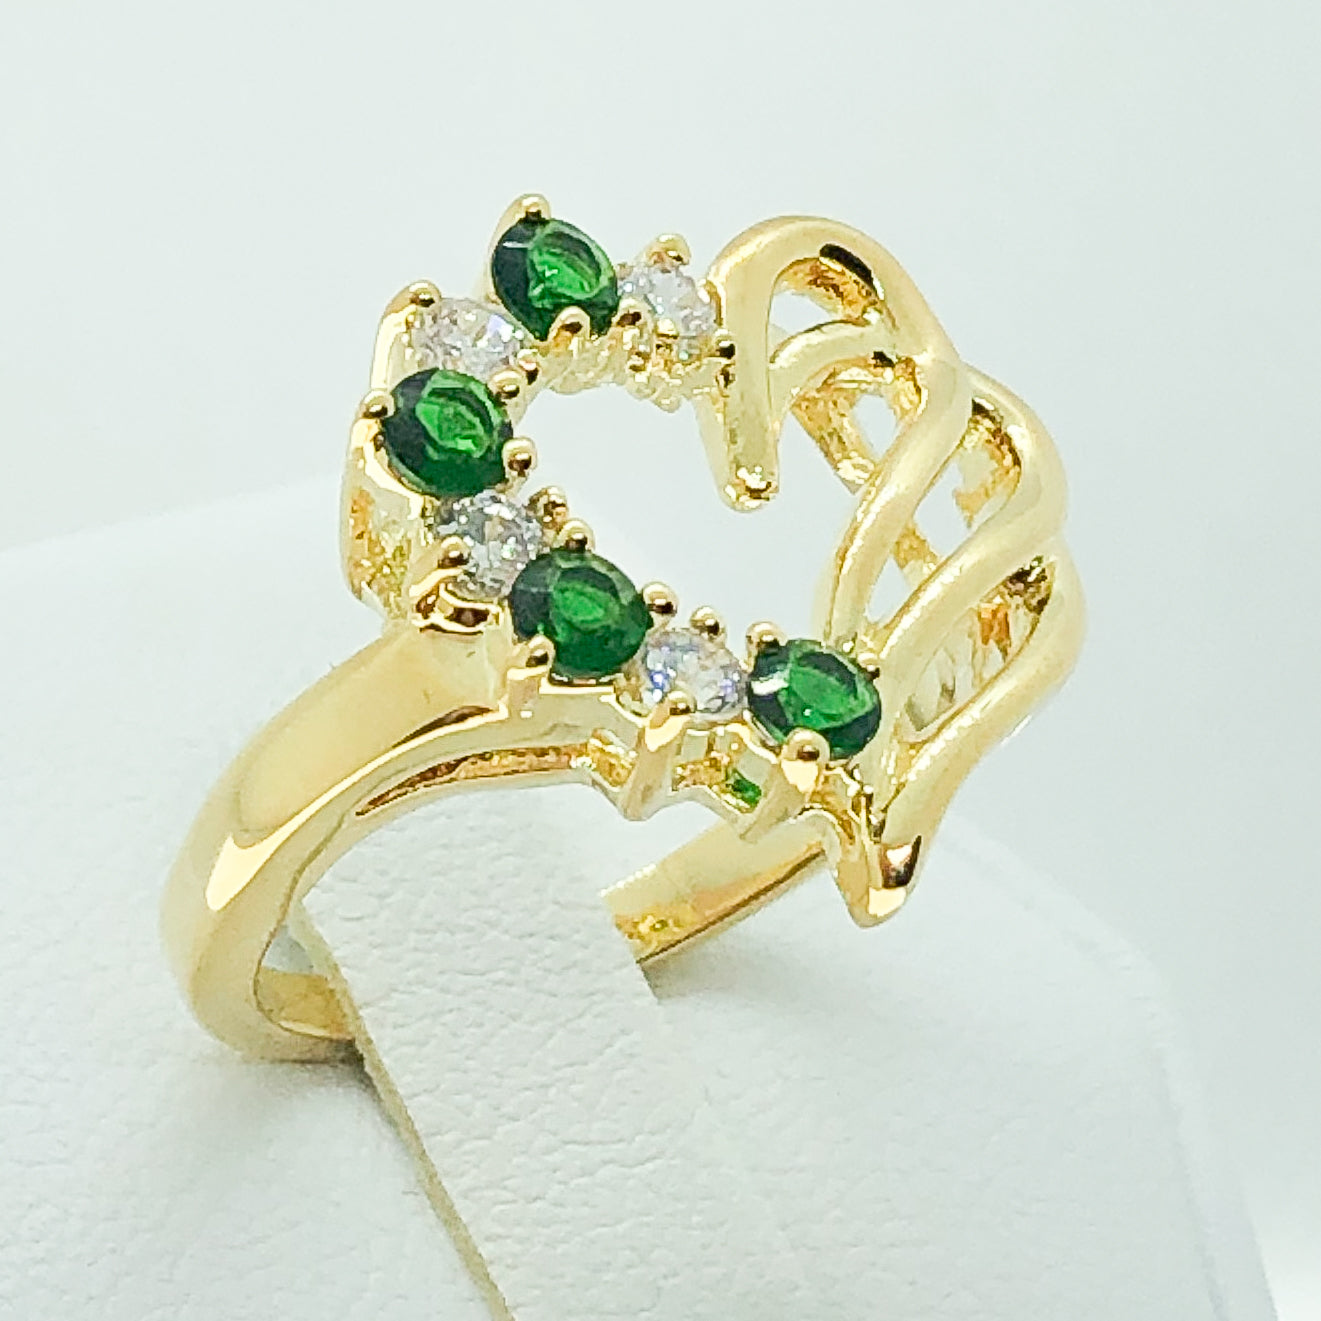 ID:R2240 Women Fashion Jewelry 18K Yellow Gold GF Unique Heart Design Green and Clear Crystal Cocktail Ring